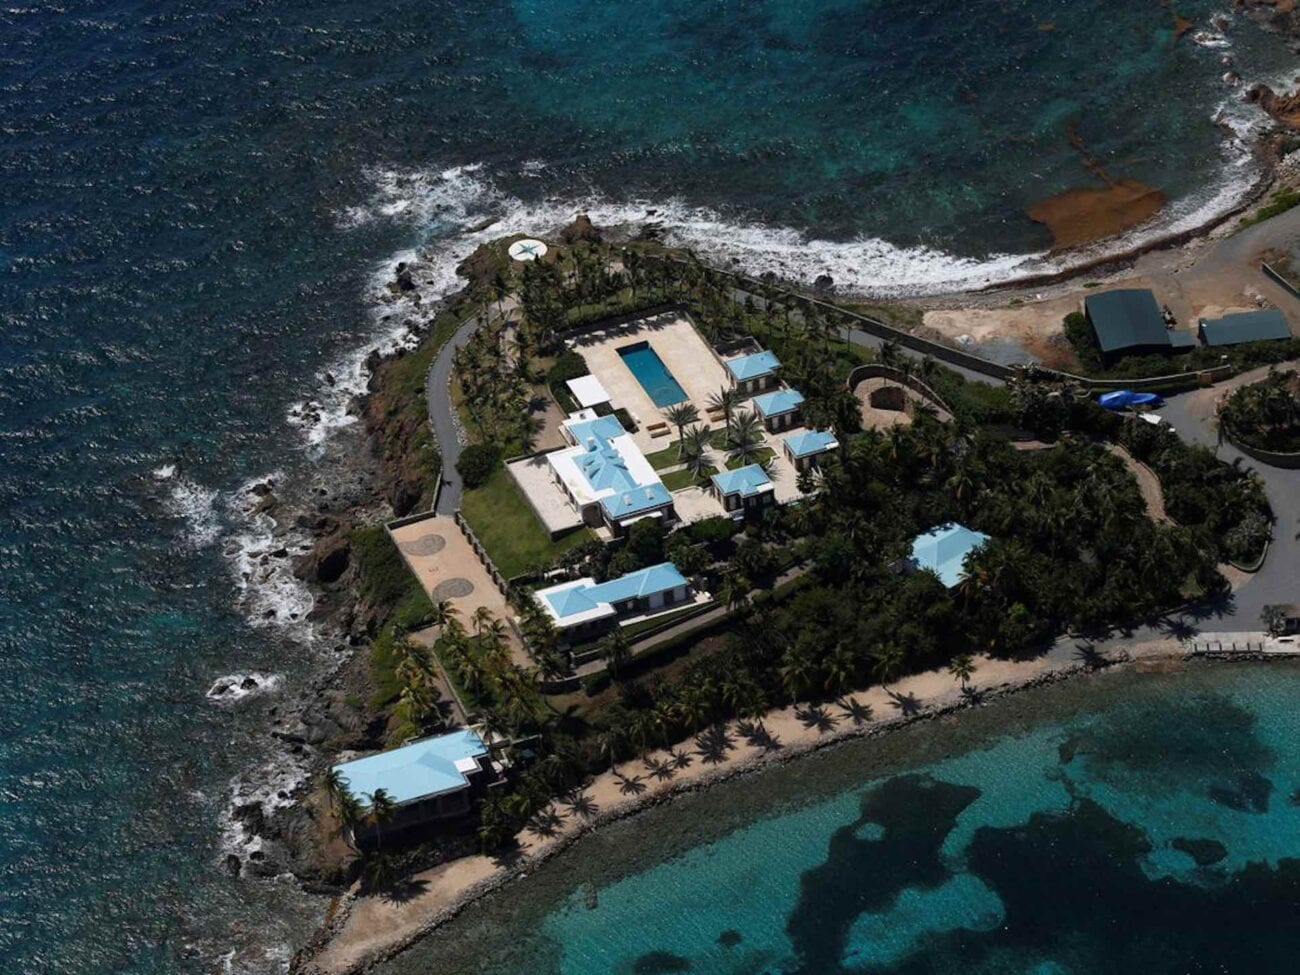 Jeffrey Epstein's Little St. James, a tiny island off the coast of St. Thomas in the U.S. Virgin Islands. Here's what life was like on the island.